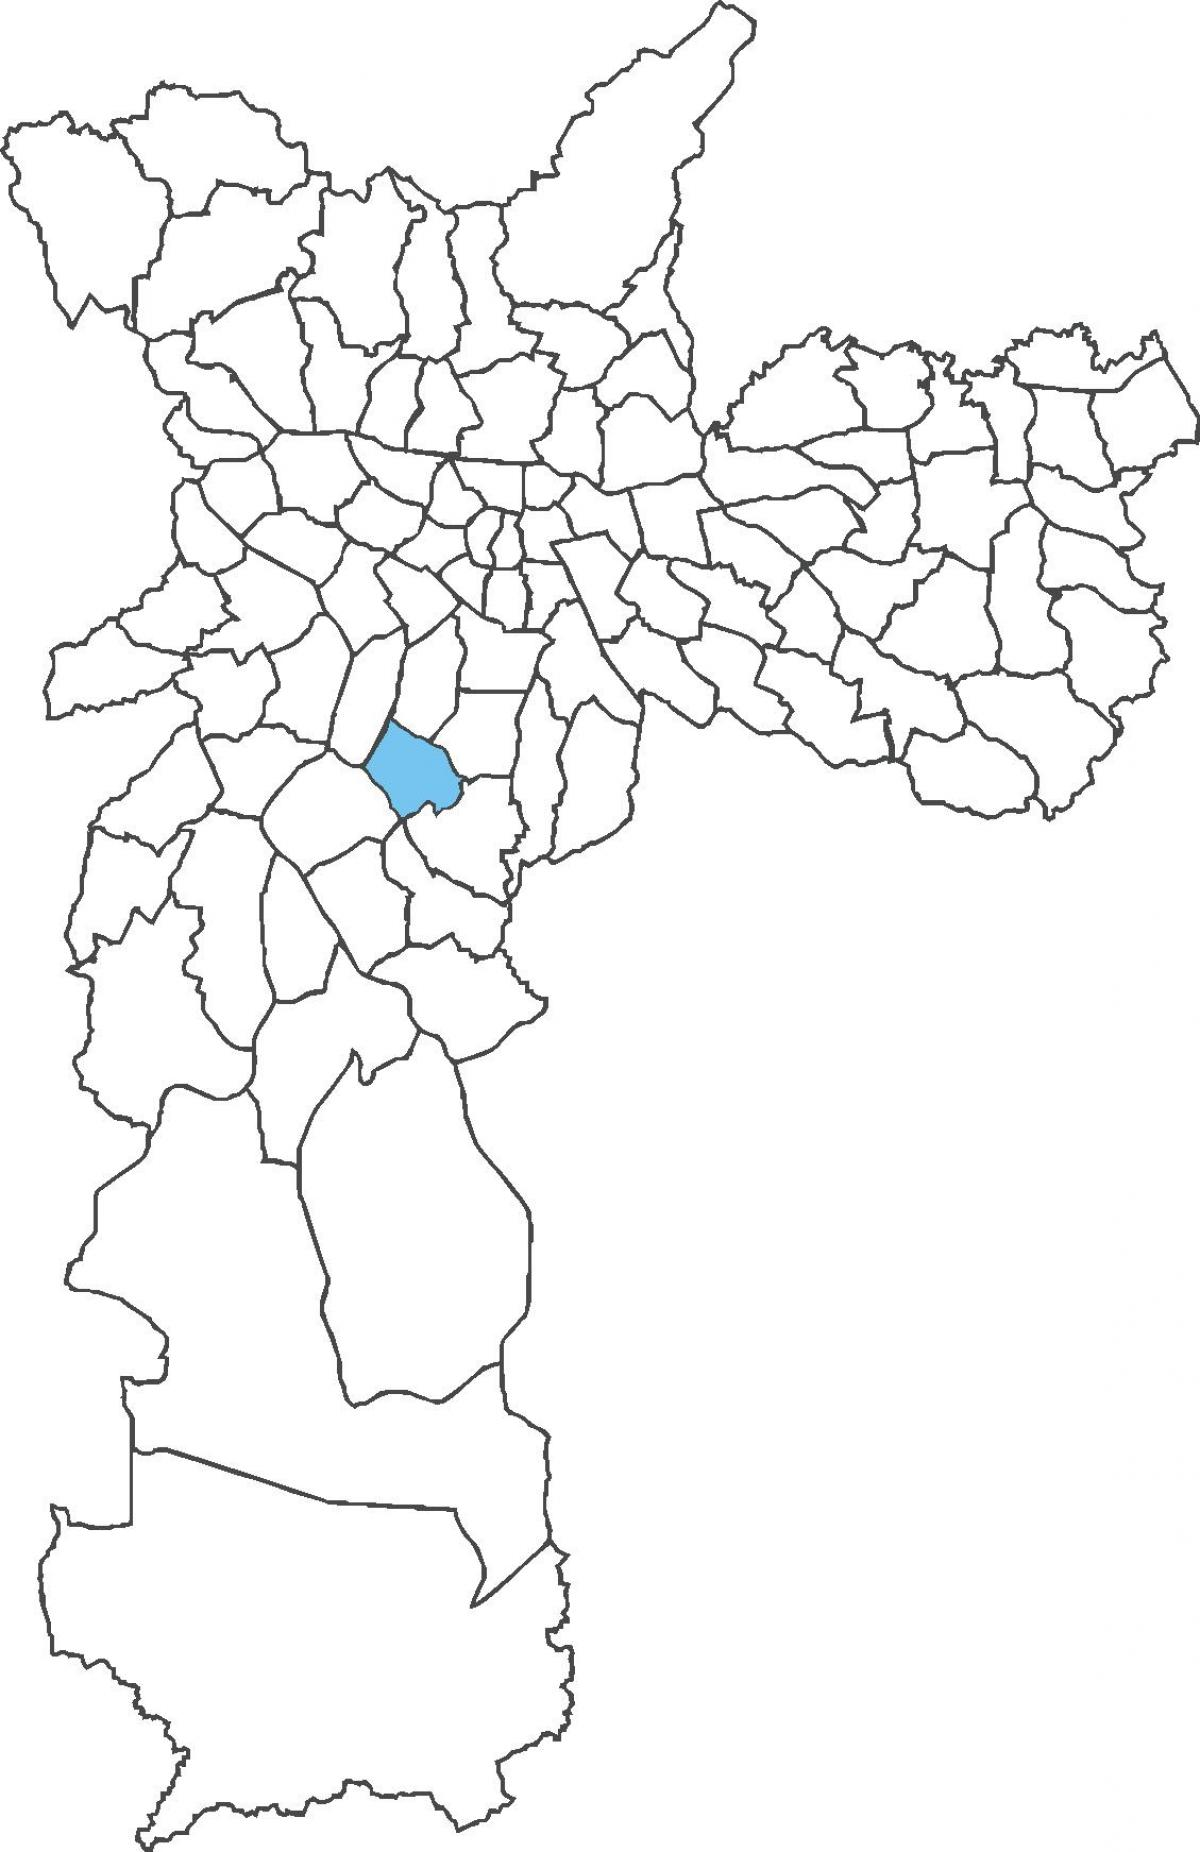 Map of Campo Belo district